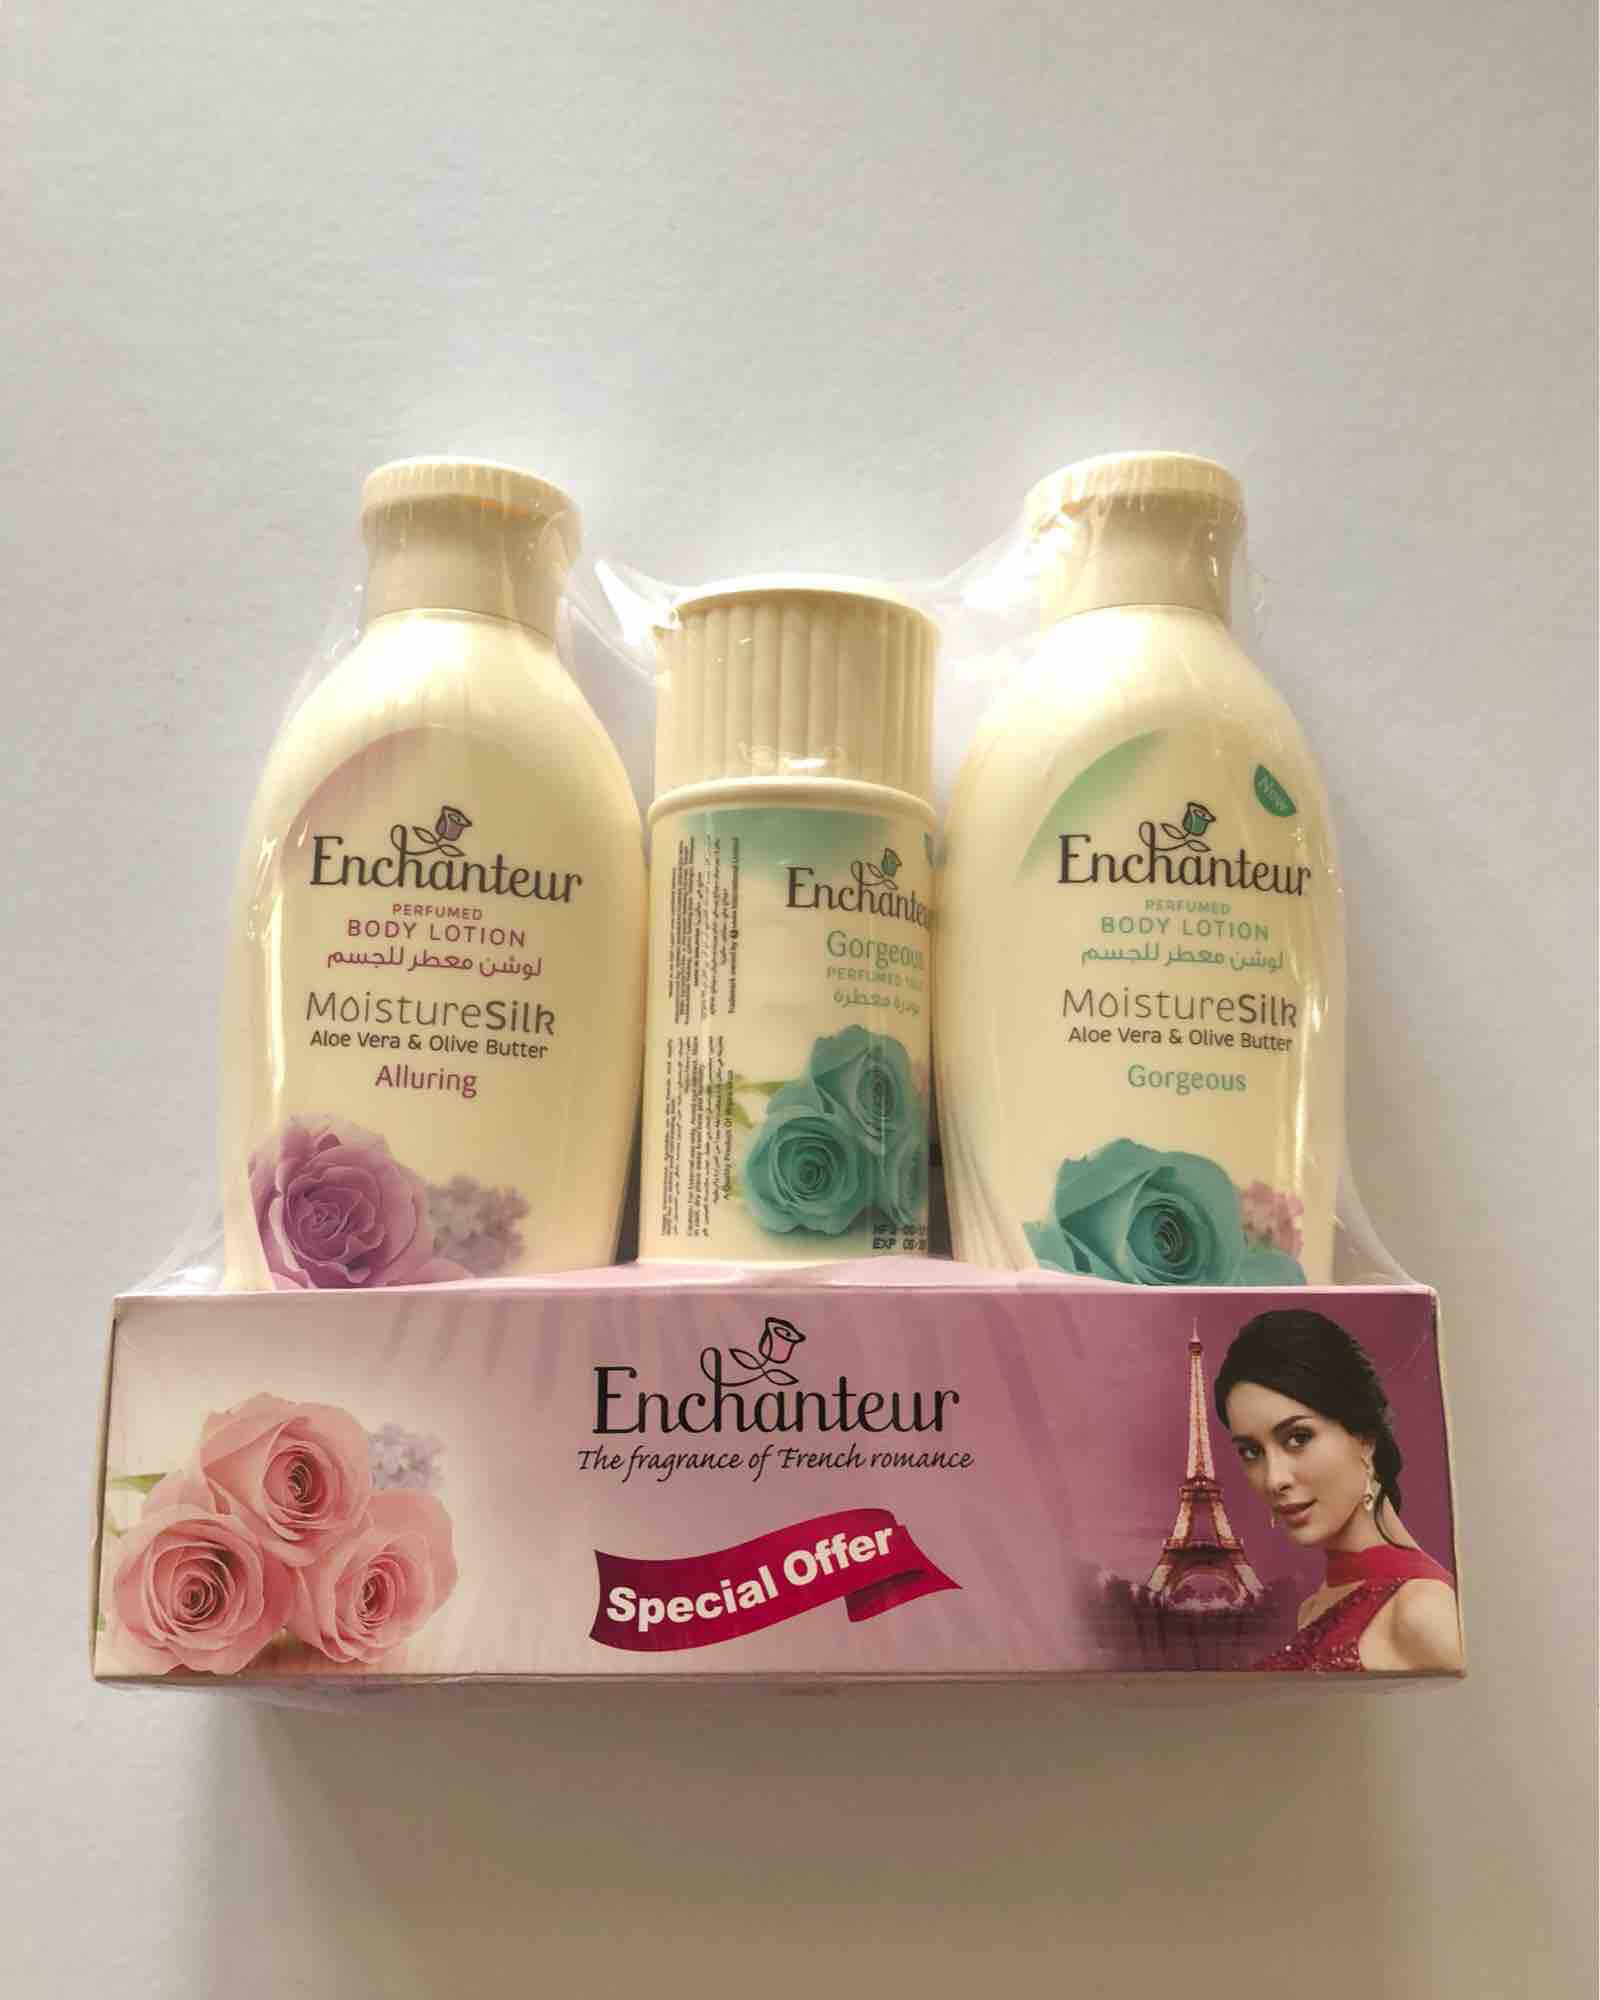 Sell Enchanteur Charming Perfumed Cheapest Best Quality Ph Store Talc Alluring 200a Php 1499